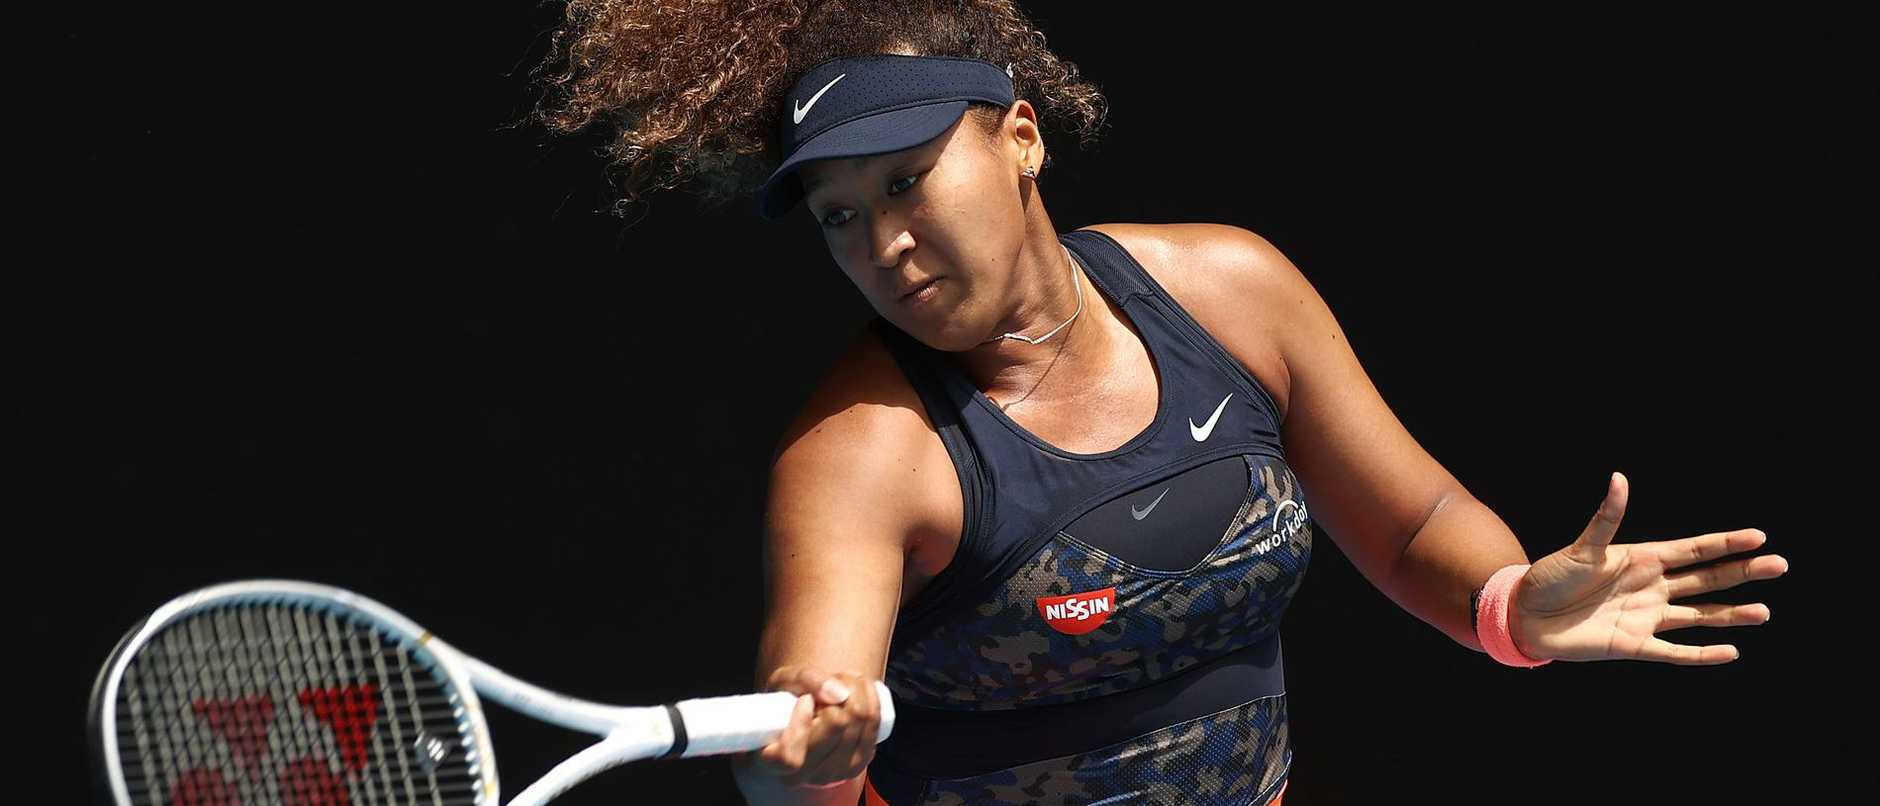 Naomi Osaka said if she was playing a tennis video game, she'd pick Su-Wei Hsieh as her character. She might be better picking herself.